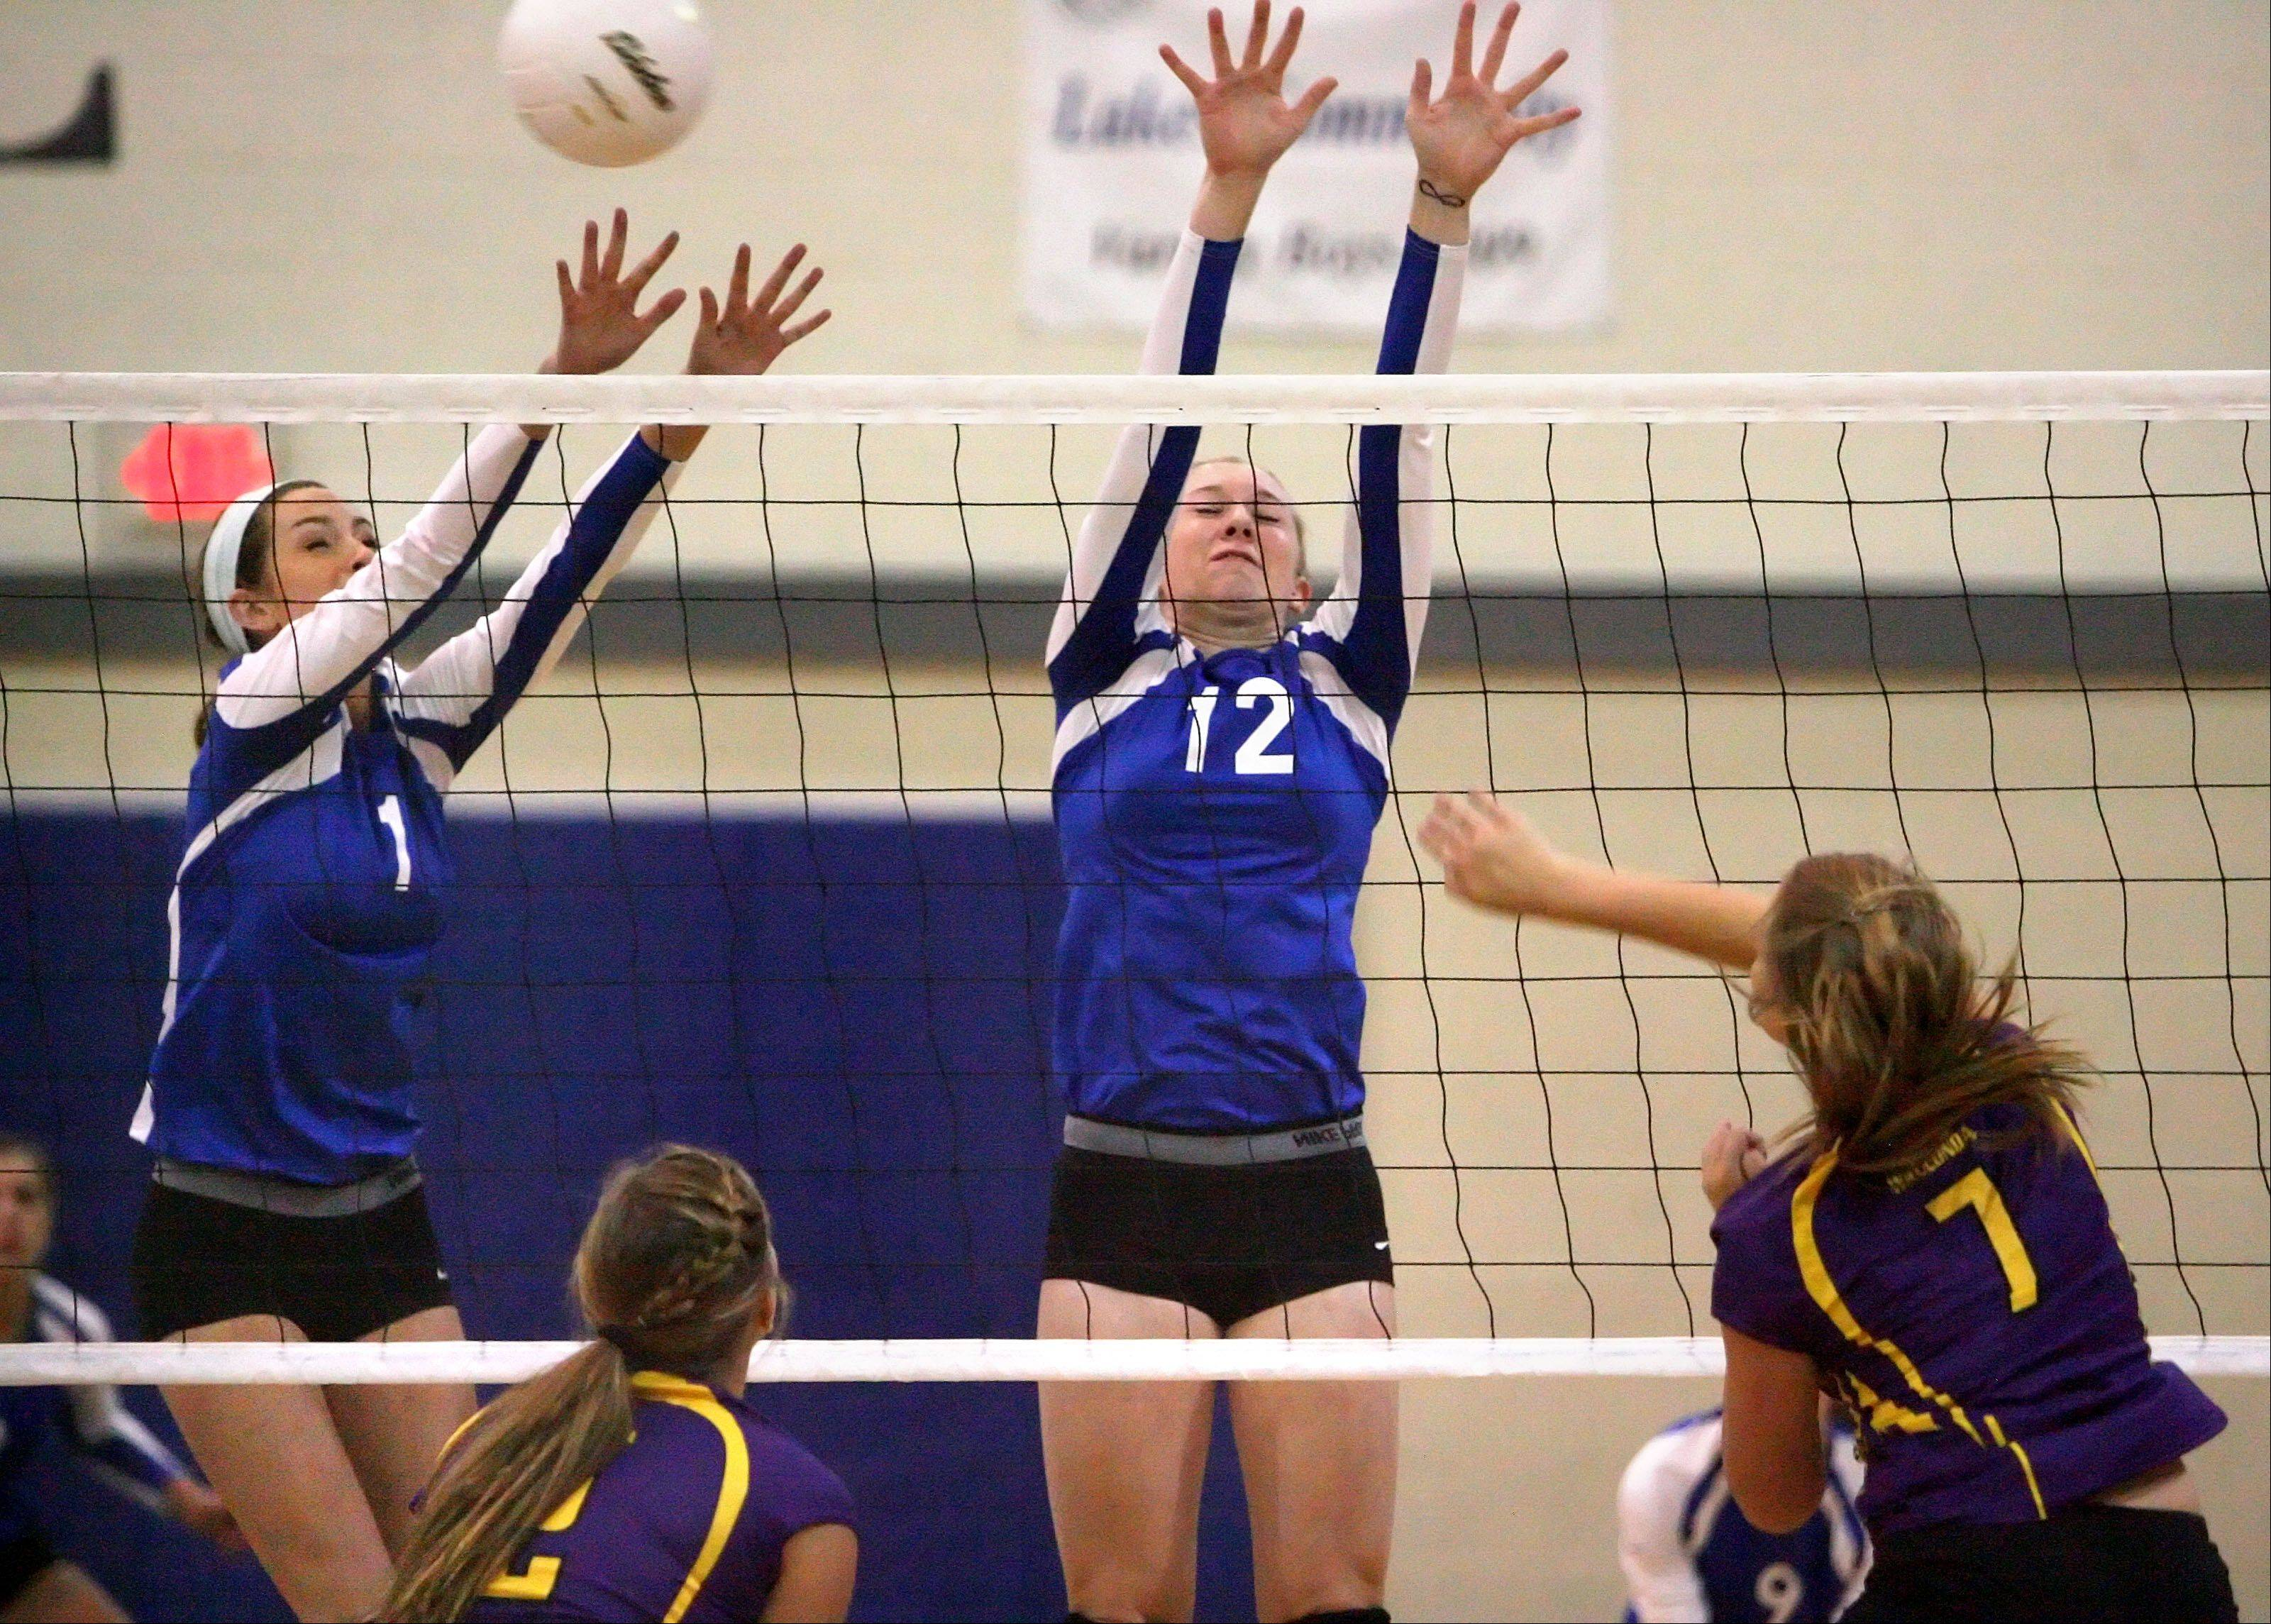 Wauconda's Lauren Soetaert, right, spikes one at Lakes' Haley Halberg, left, and Sarah Horner on Tuesday night at Lakes.